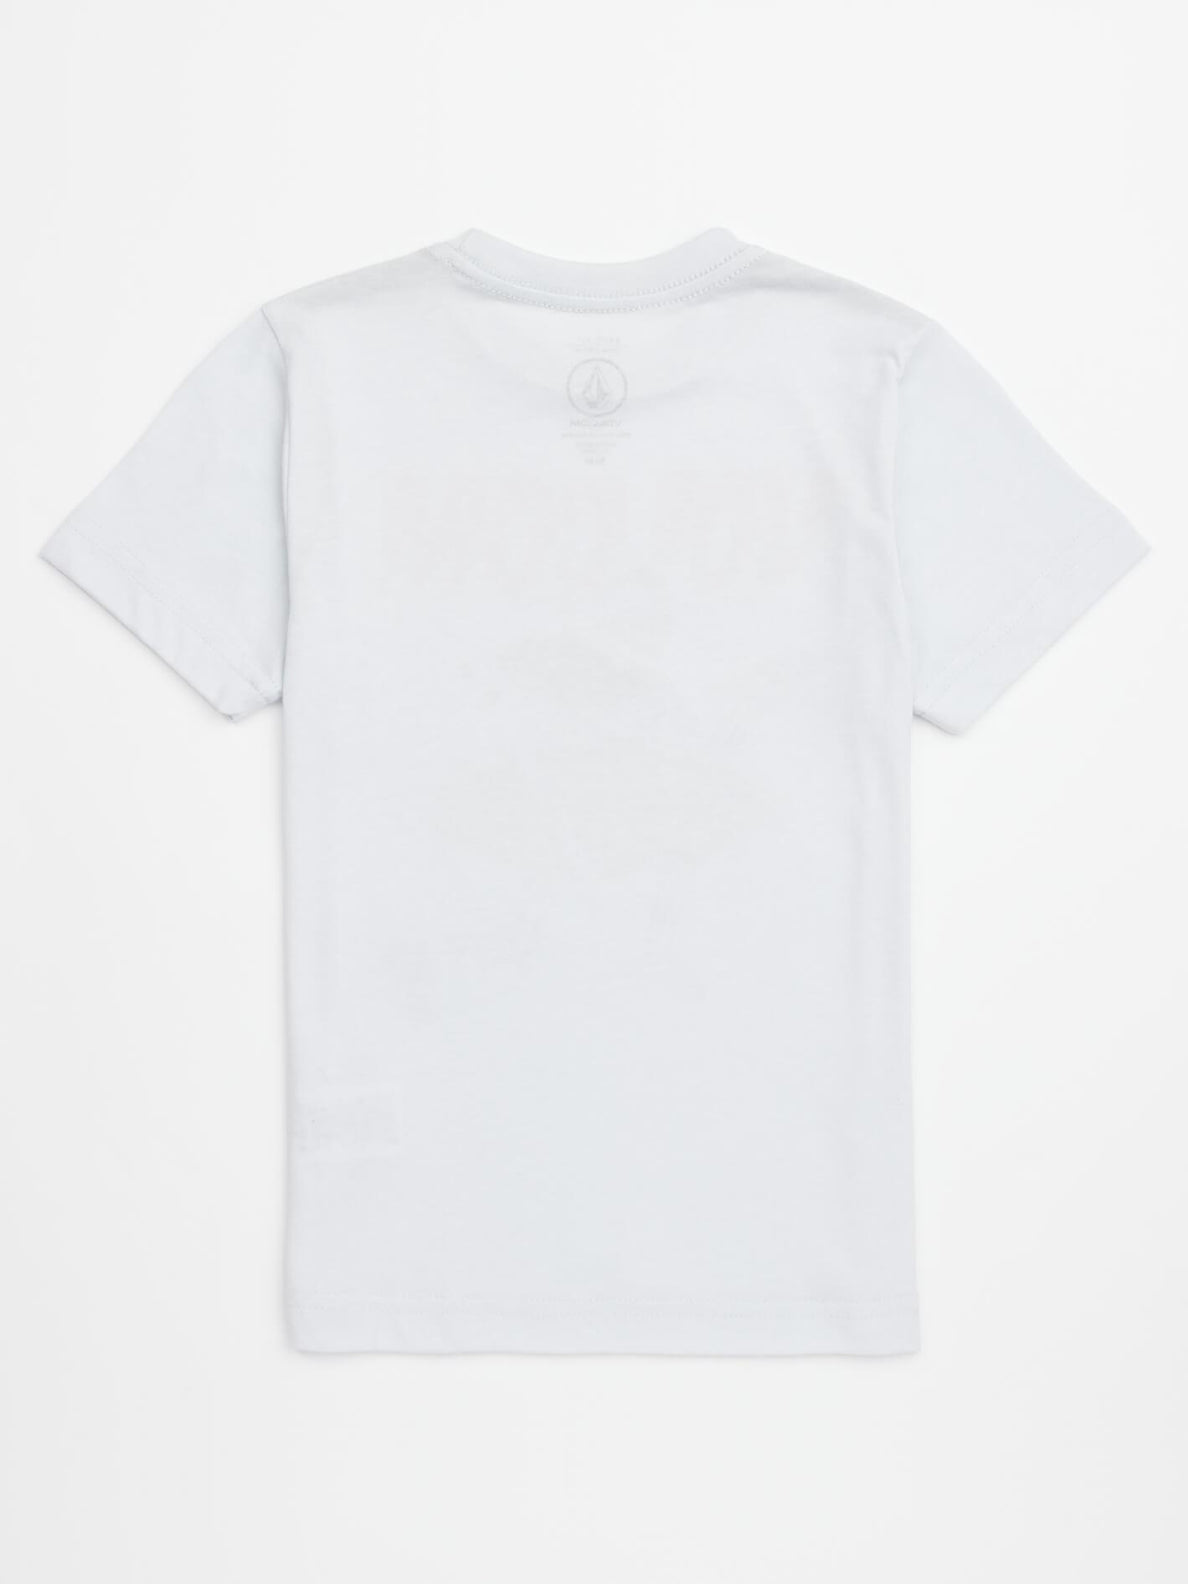 Little Boys Shark Stone Tee In White, Back View